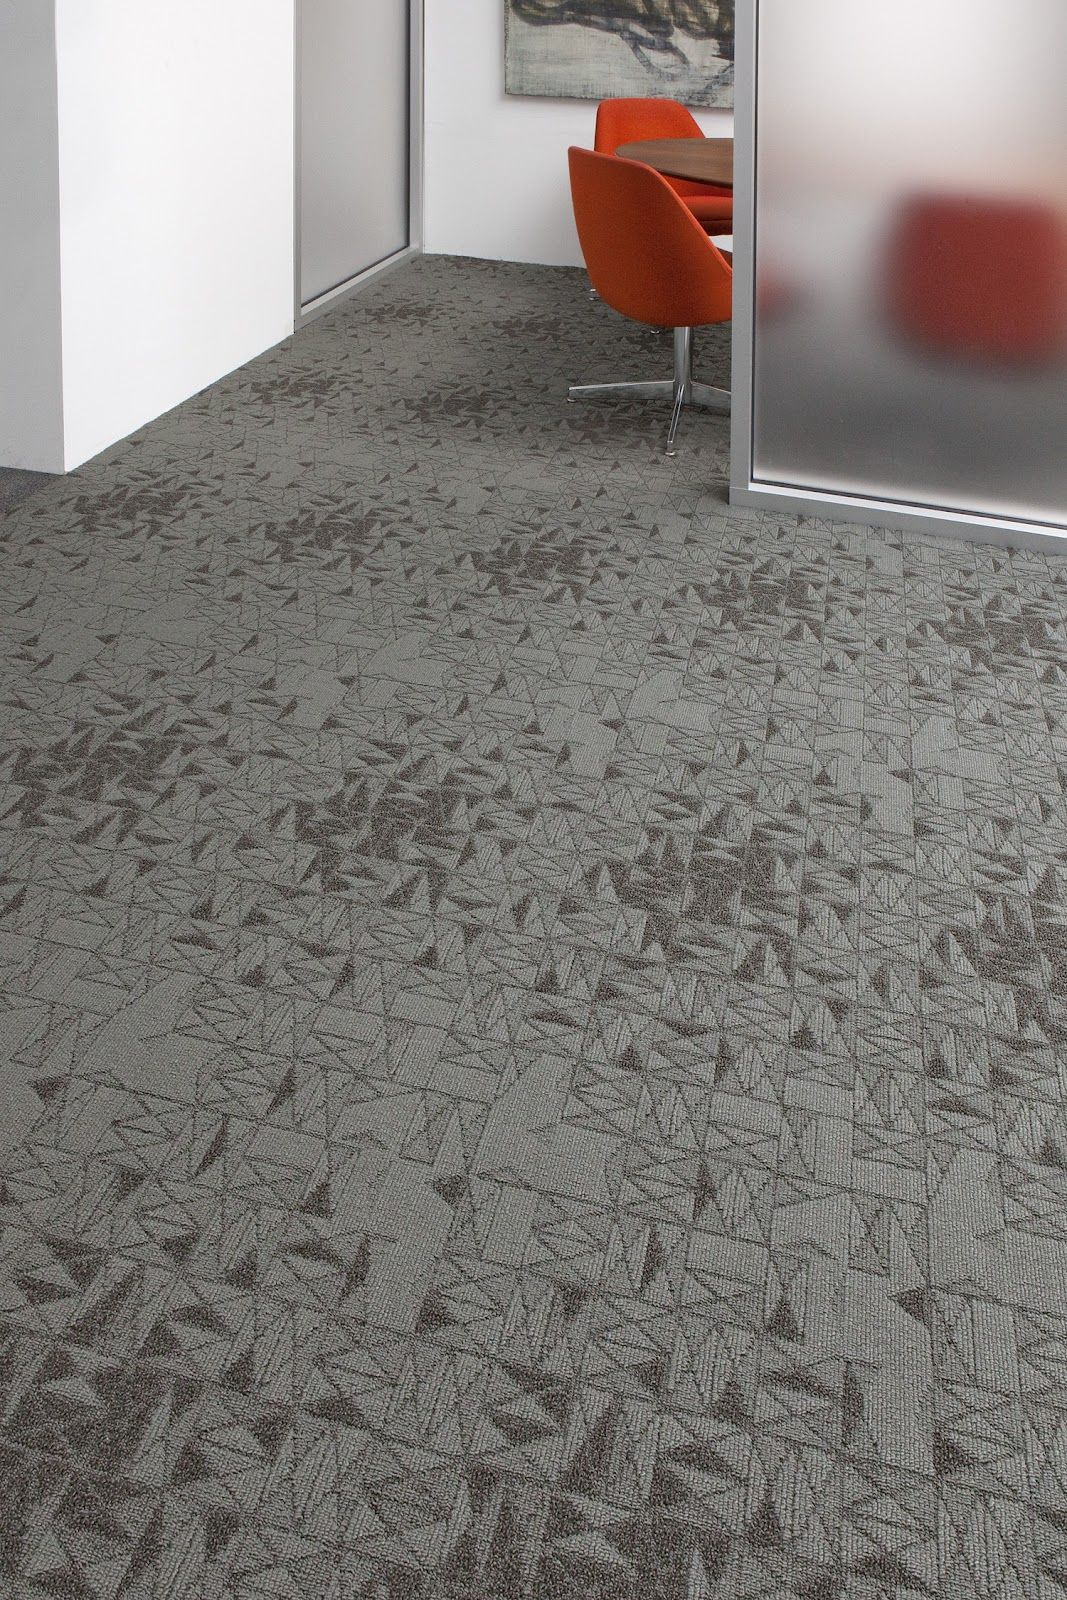 Interesting Carpet Makes We Want To Roll On It